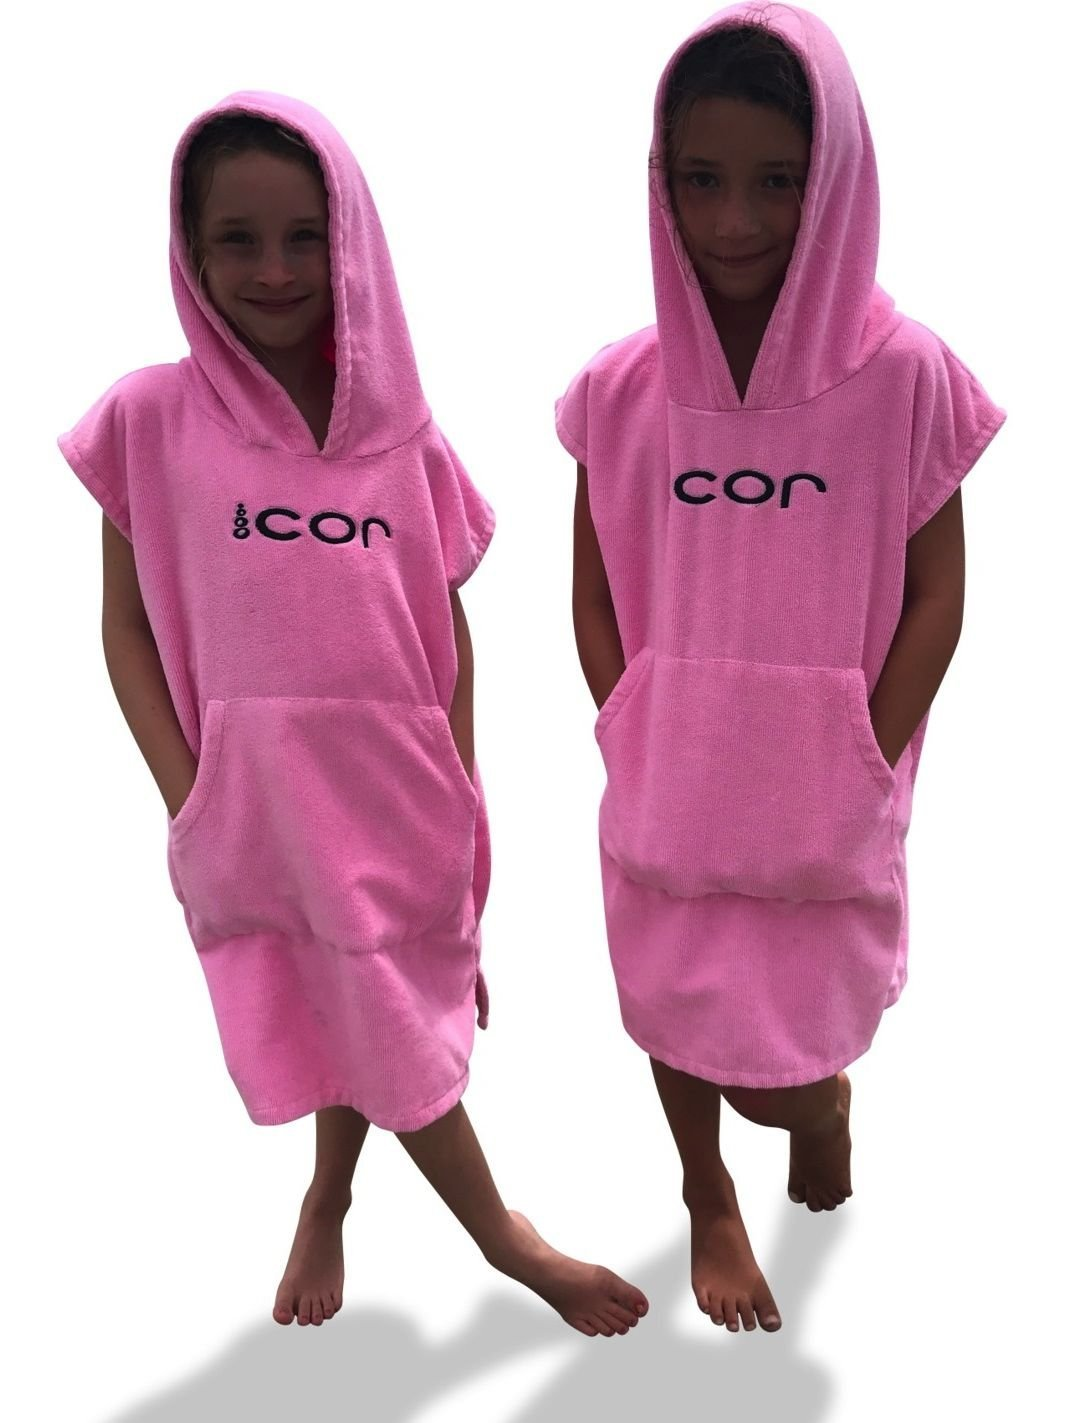 a45387bed39 Amazon.com: COR Childrens Unisex Poncho Towel Robe Light and Dark Blue,  Pink and Green for Ages 3-10 (Pink): Home & Kitchen